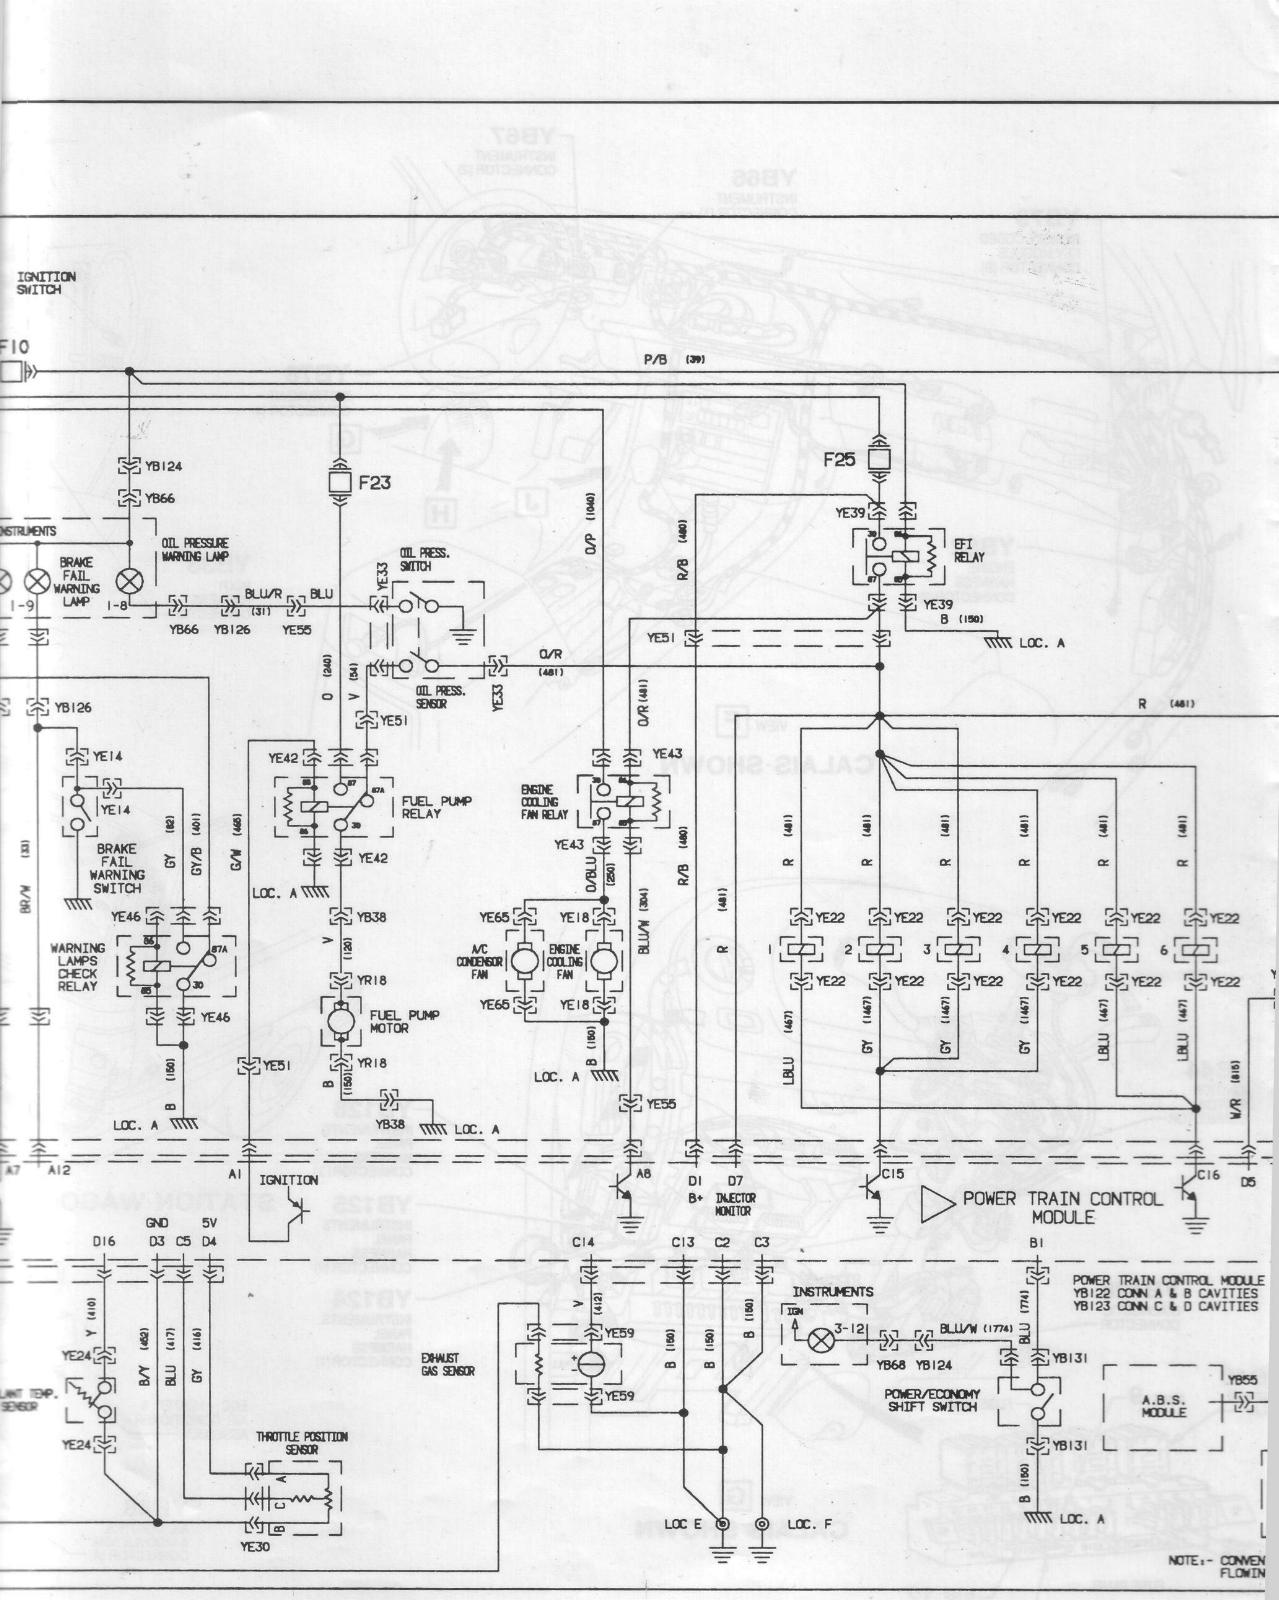 ve commodore trailer wiring diagram efcaviation com vn commodore wiring diagram pdf at pacquiaovsvargaslive.co